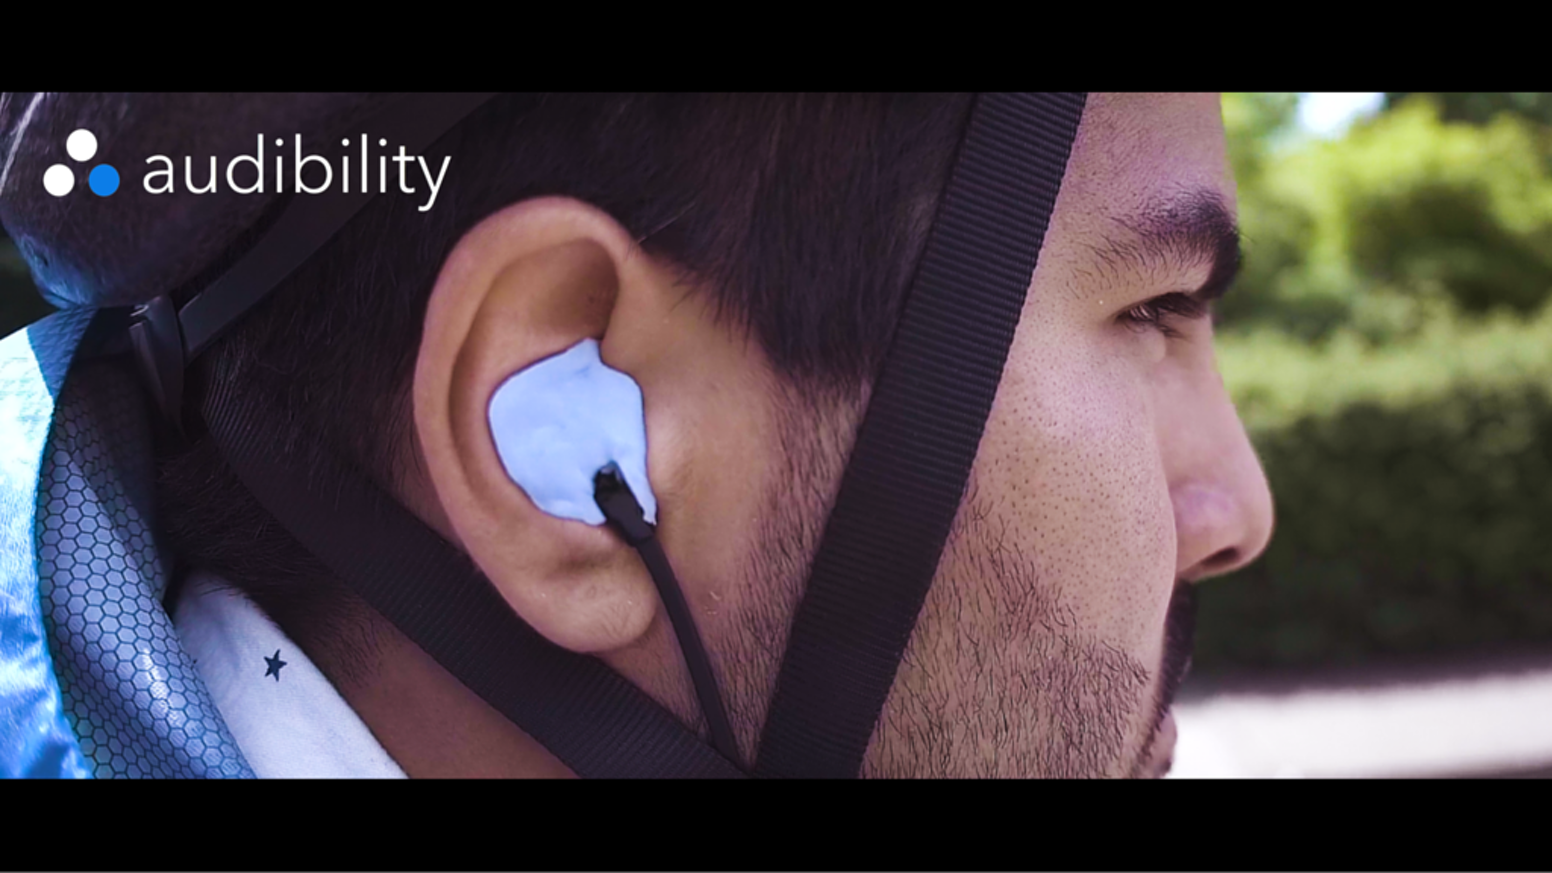 Custom-fit earphones designed to fit your EarPrint in just 10 minutes, and stay put for any activity. It's quick, easy, and affordable.